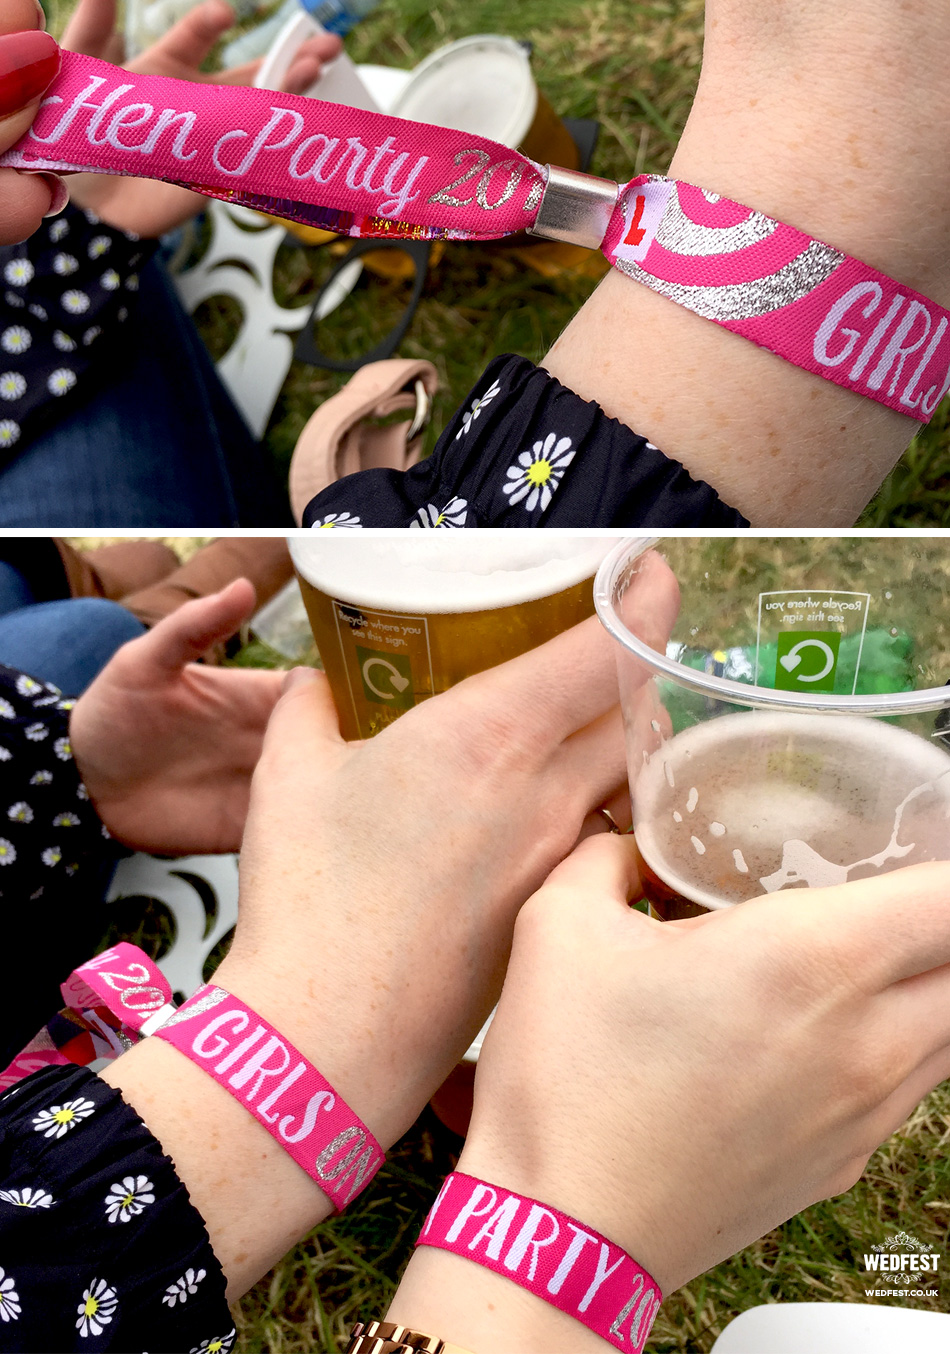 festival hen party wristbands